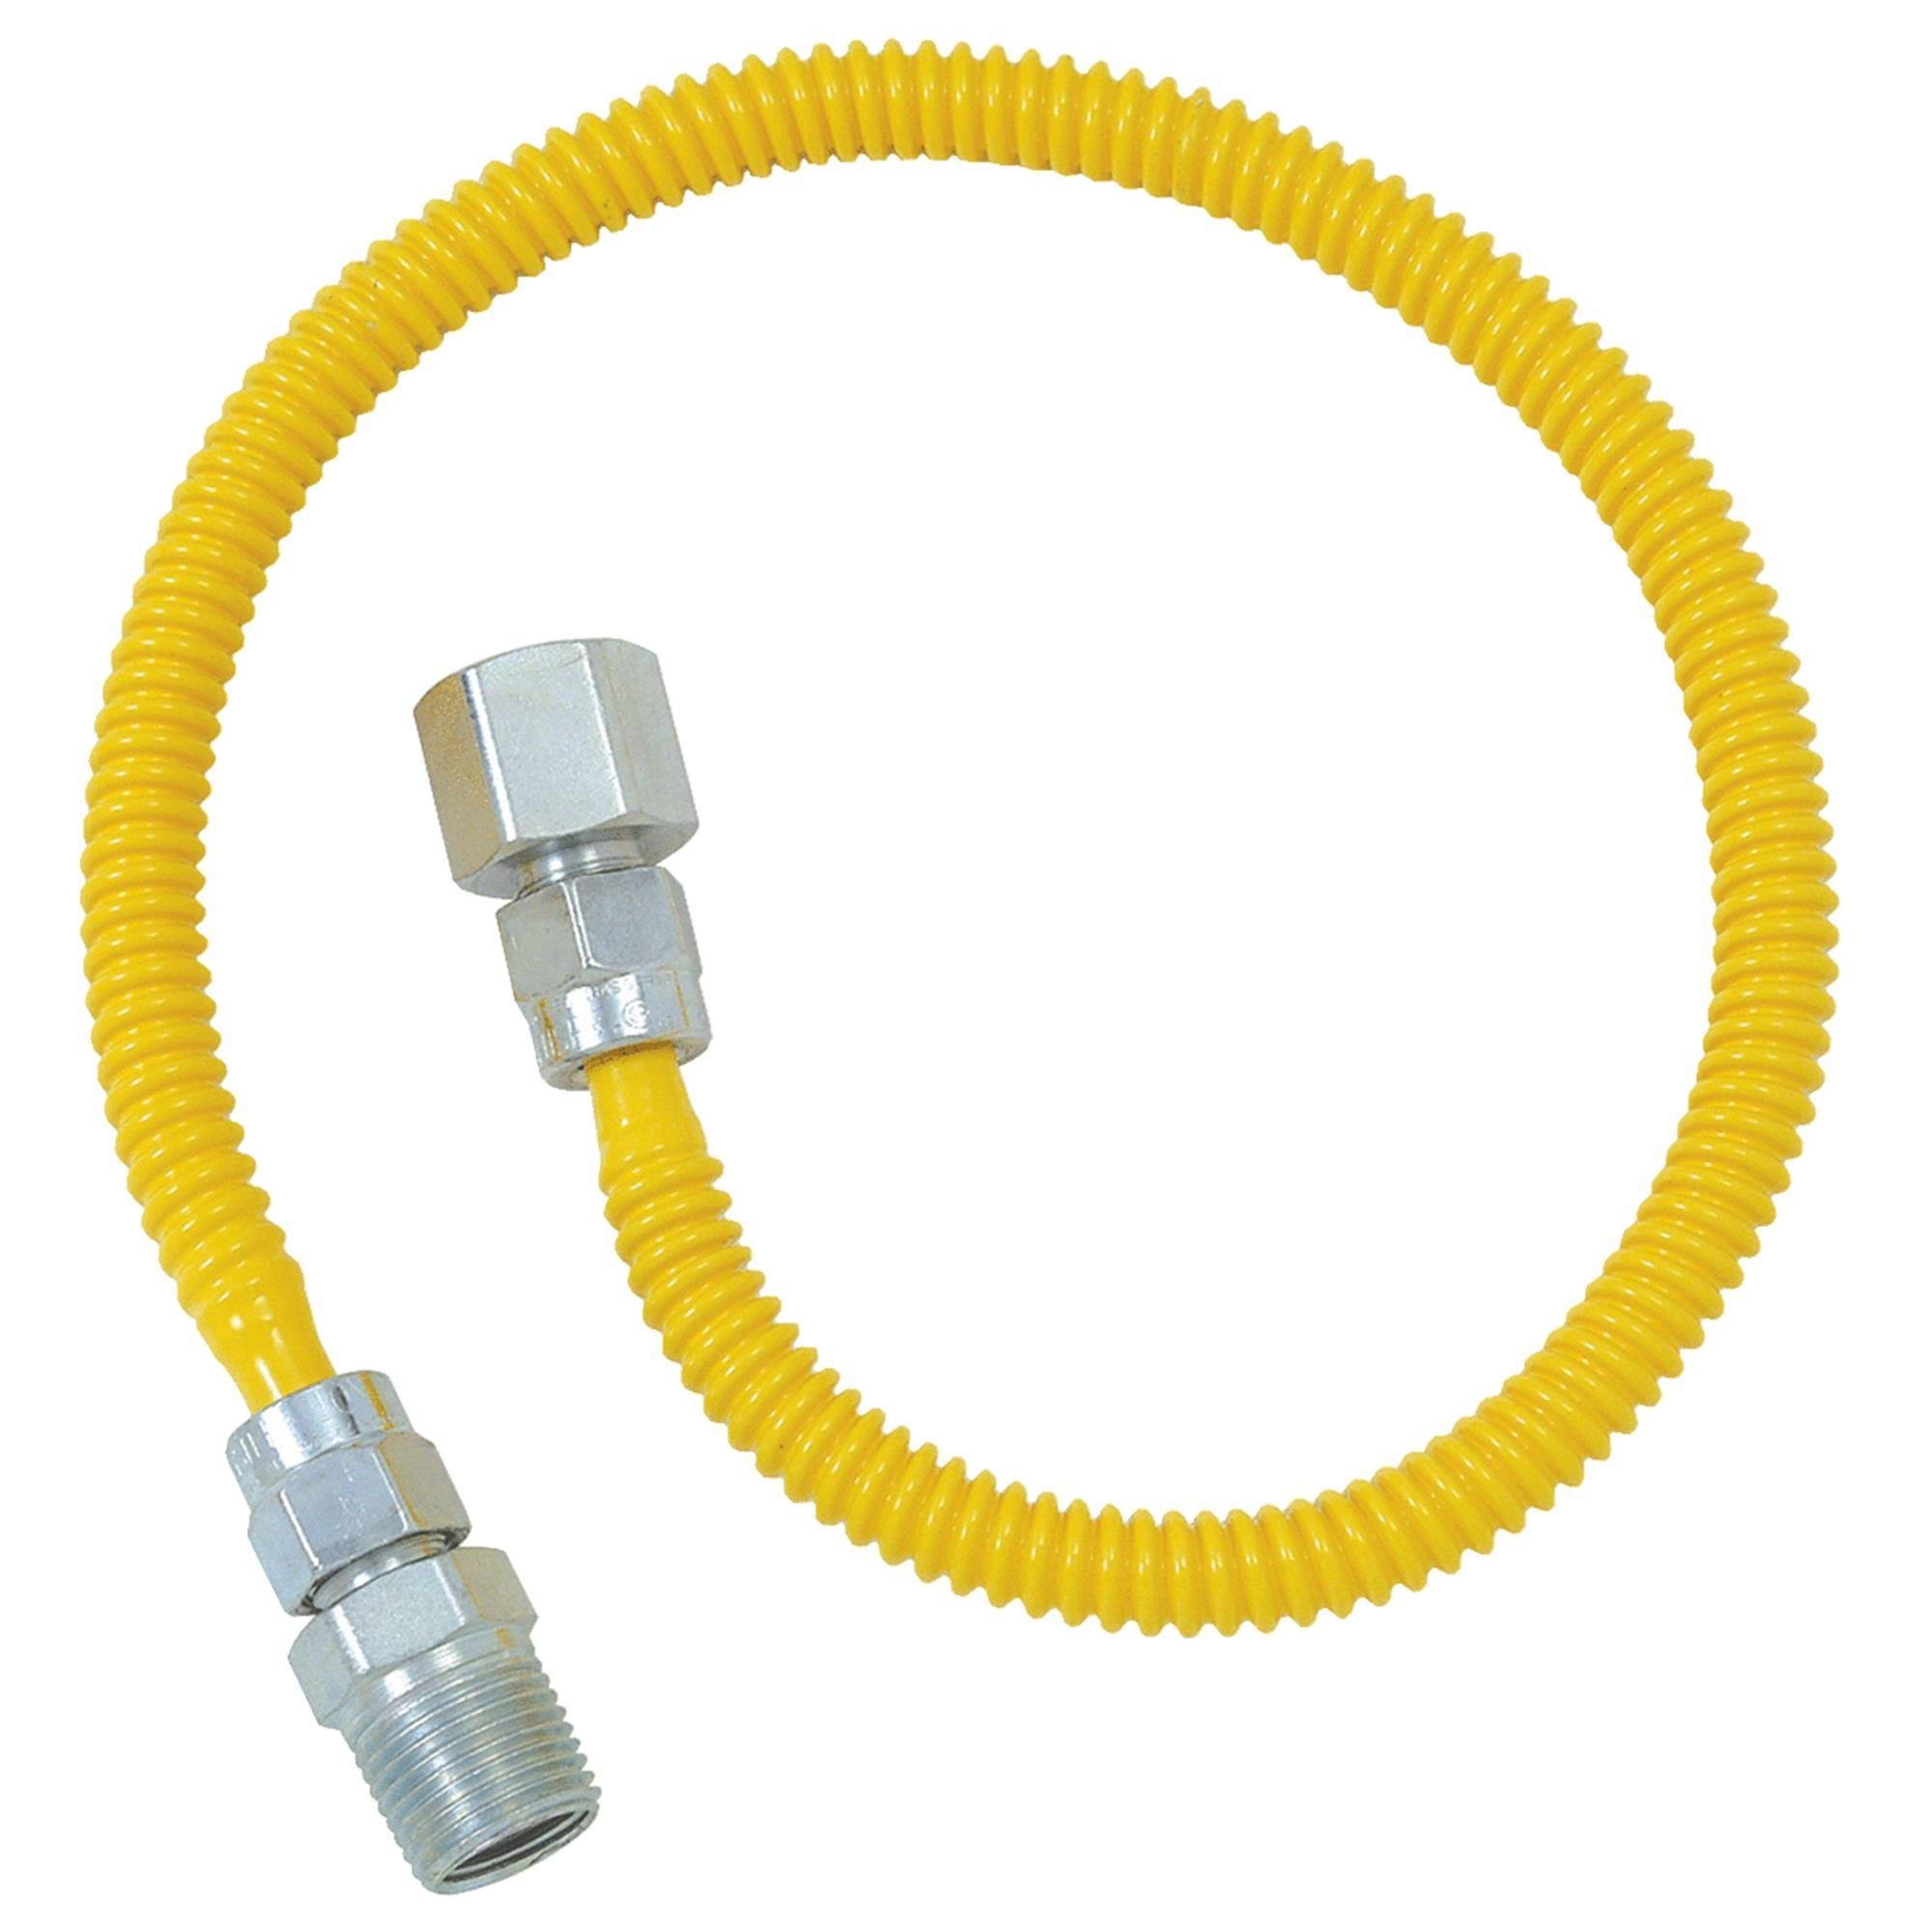 "Brasscraft Procoat Coated Gas Appliance Connector - with Fittings, 1/2"" Fip x 1/2"" Mip x 24"", Stainless Steel"